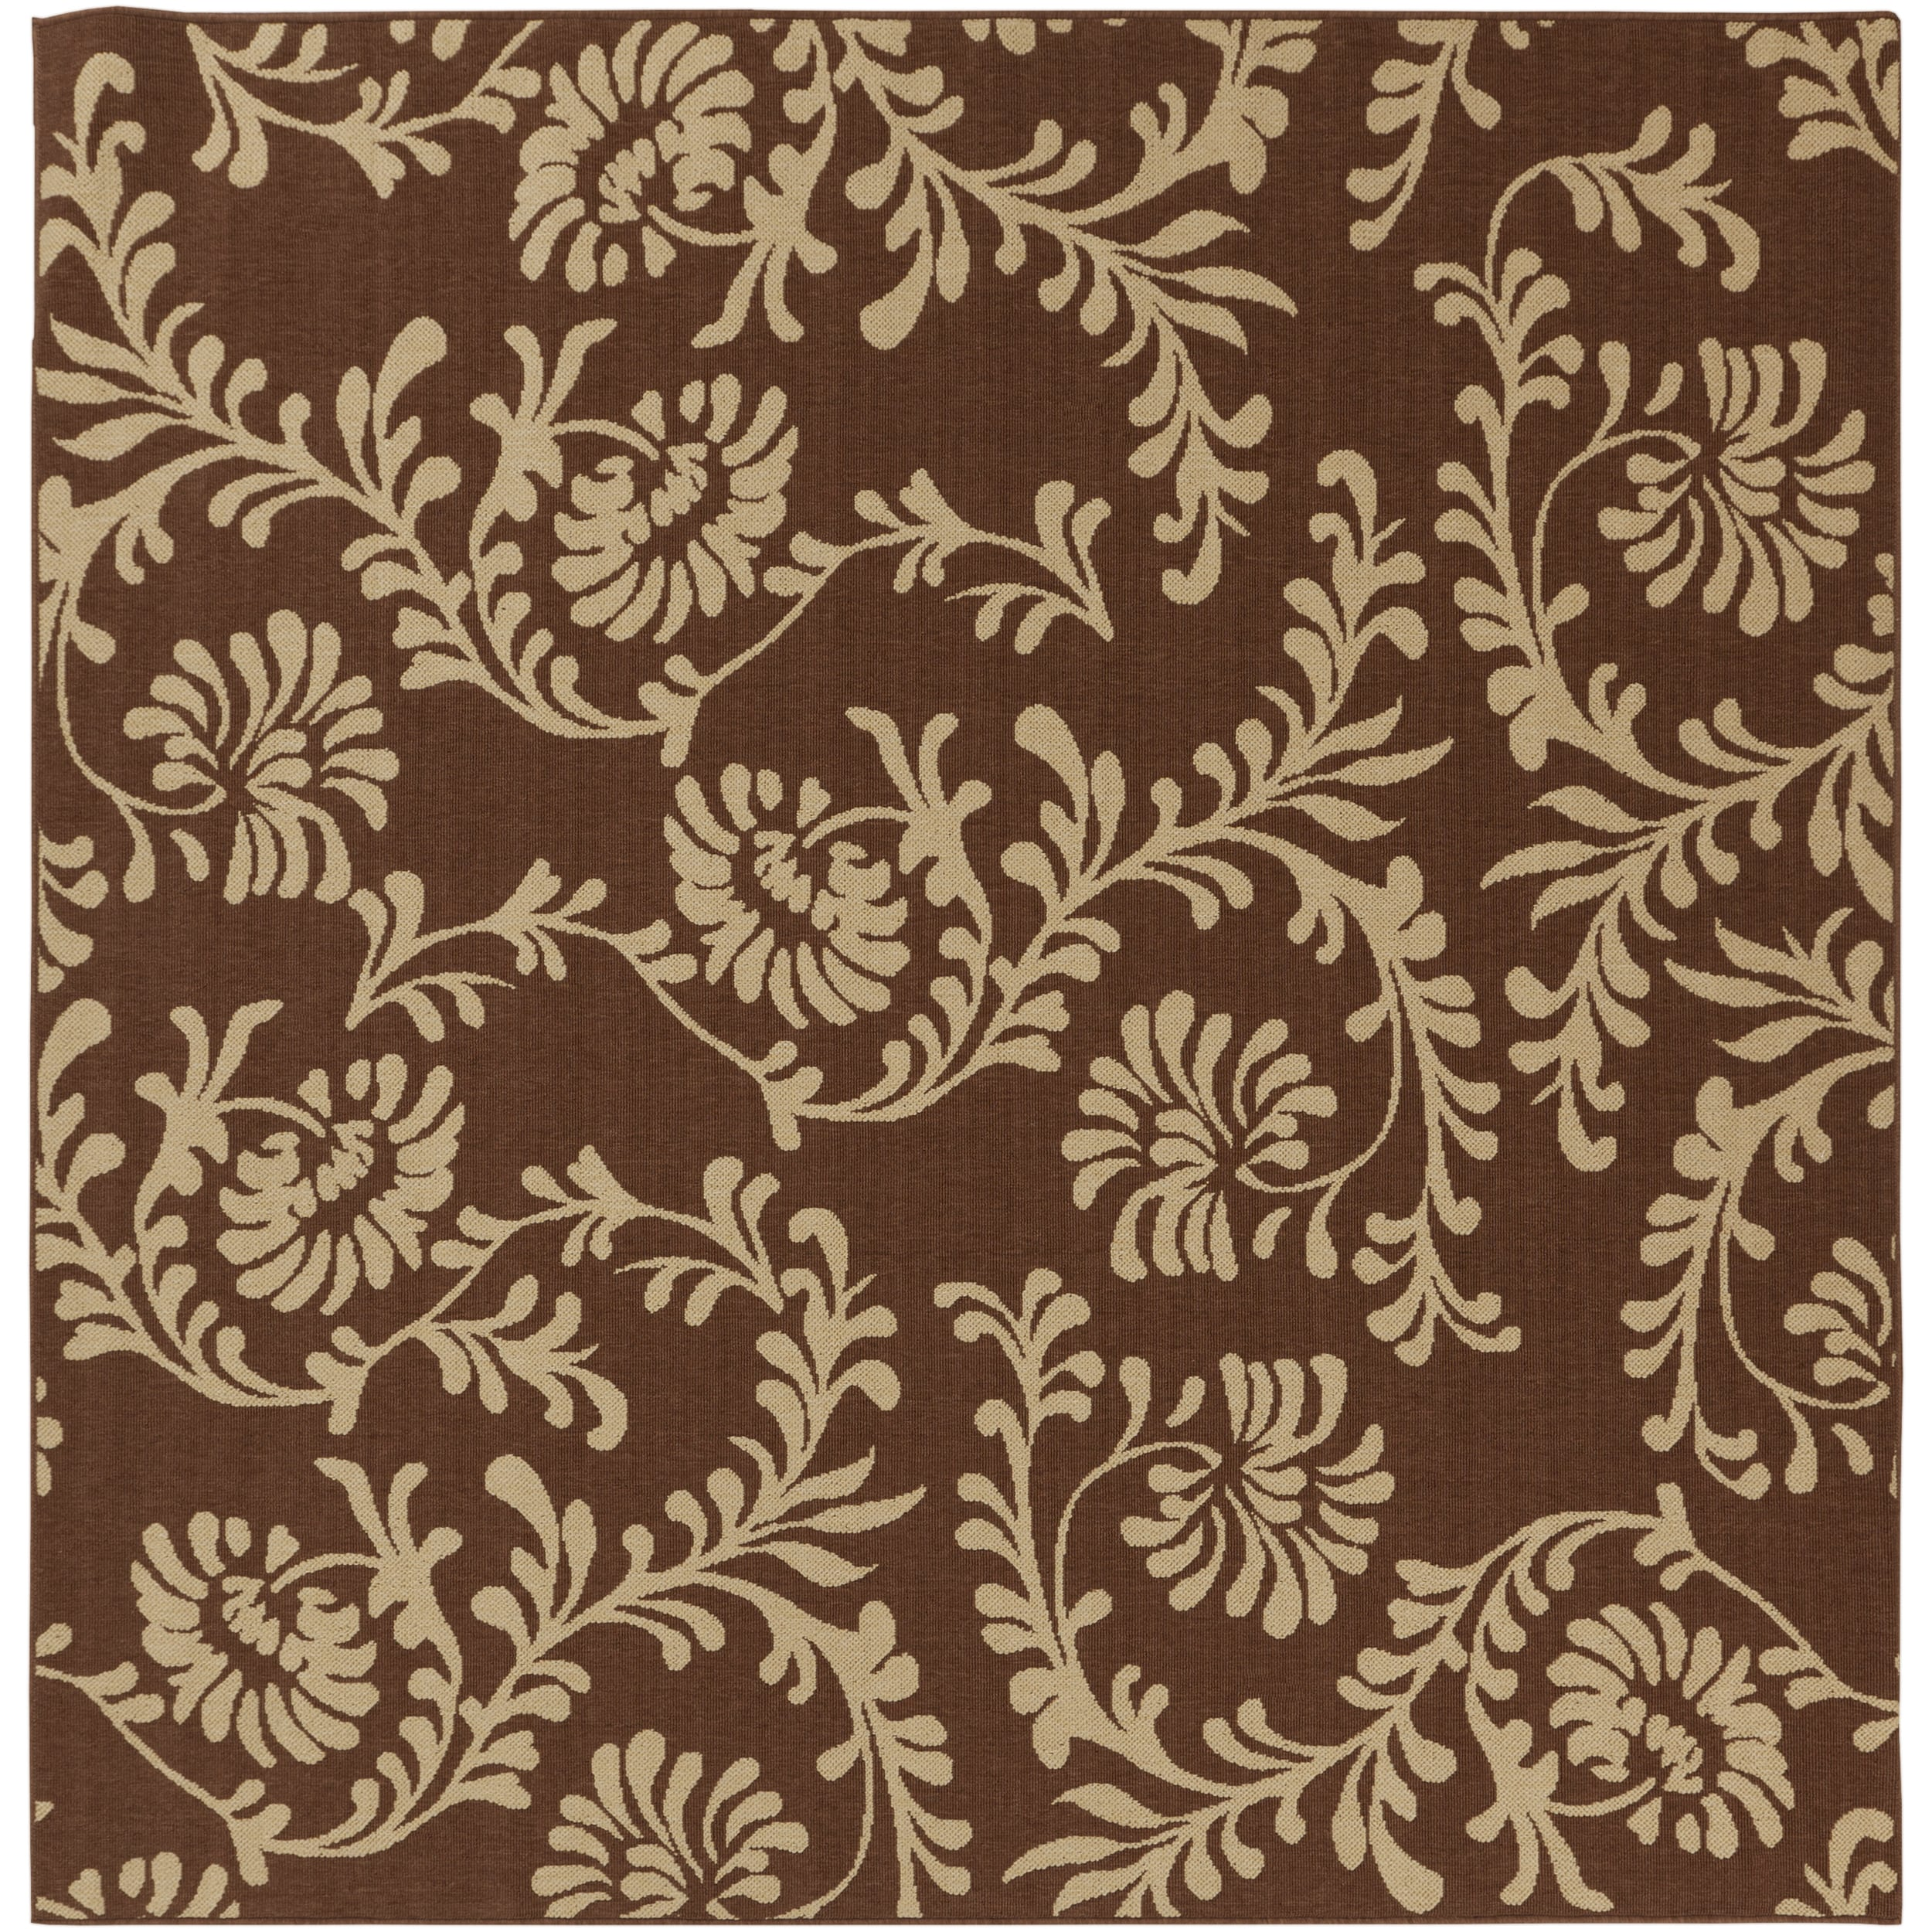 Turin Russet Floral Indoor/Outdoor Rug (8'9 x 8'9)